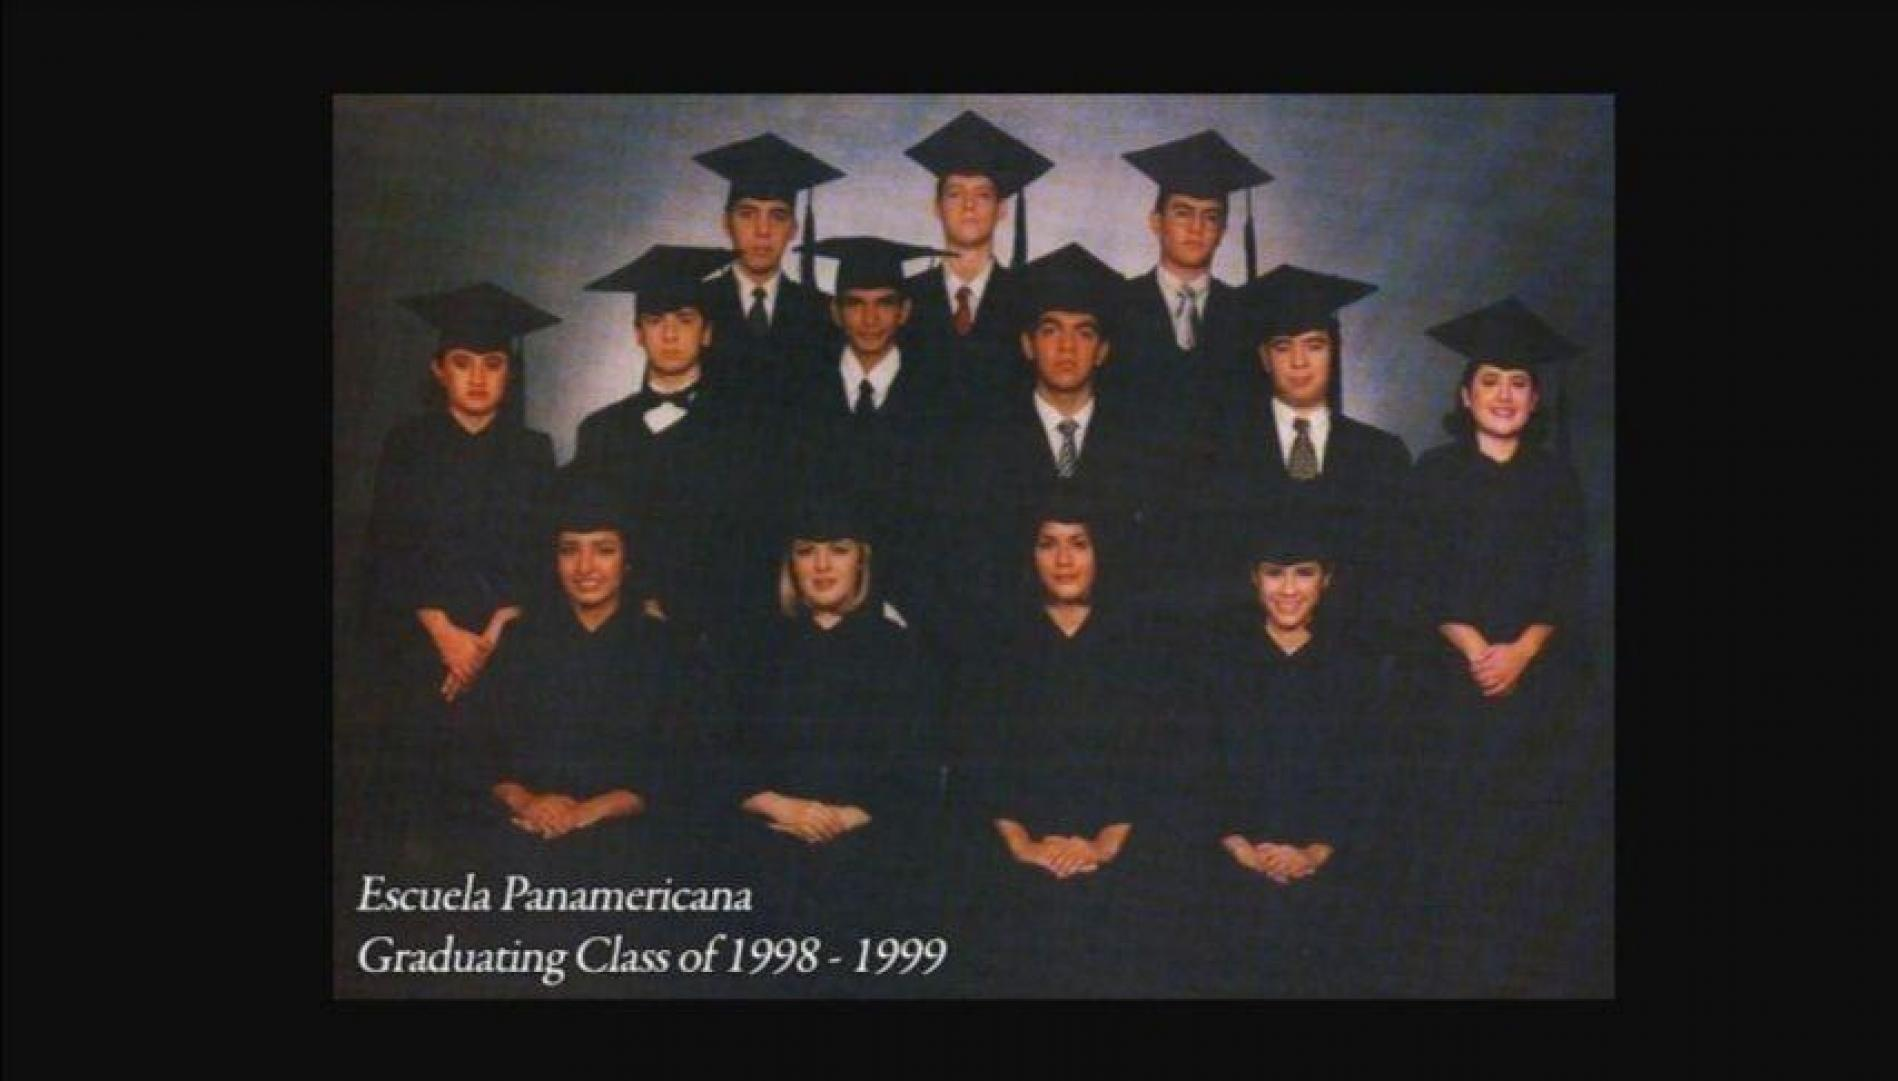 Several officials from the current administration graduated from the Escuela Panamericana, including the president himself. In the top row, from left to right, are the three inseparable friends: Nayib Bukele, Federico Anliker (current CEPA president), and Fernando López (current Environment Minister). Photo available on the Escuela Panamericana yearbook website.